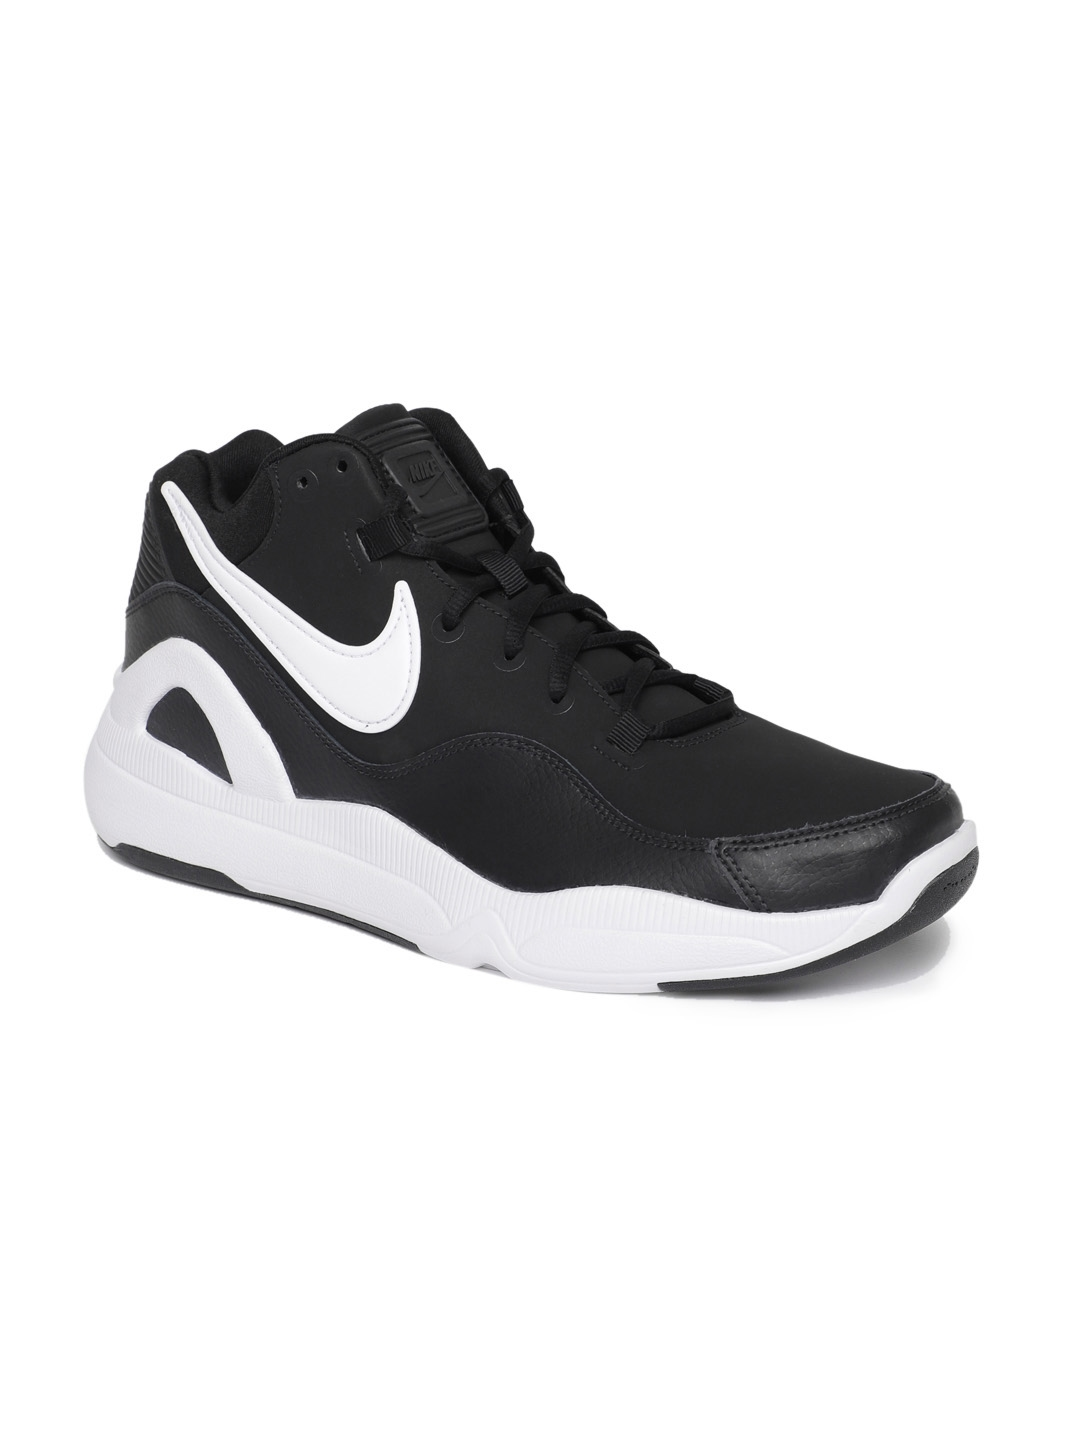 27724a8282d60 Buy Nike Men Black Dilatta Sneakers - Casual Shoes for Men 4030156 ...